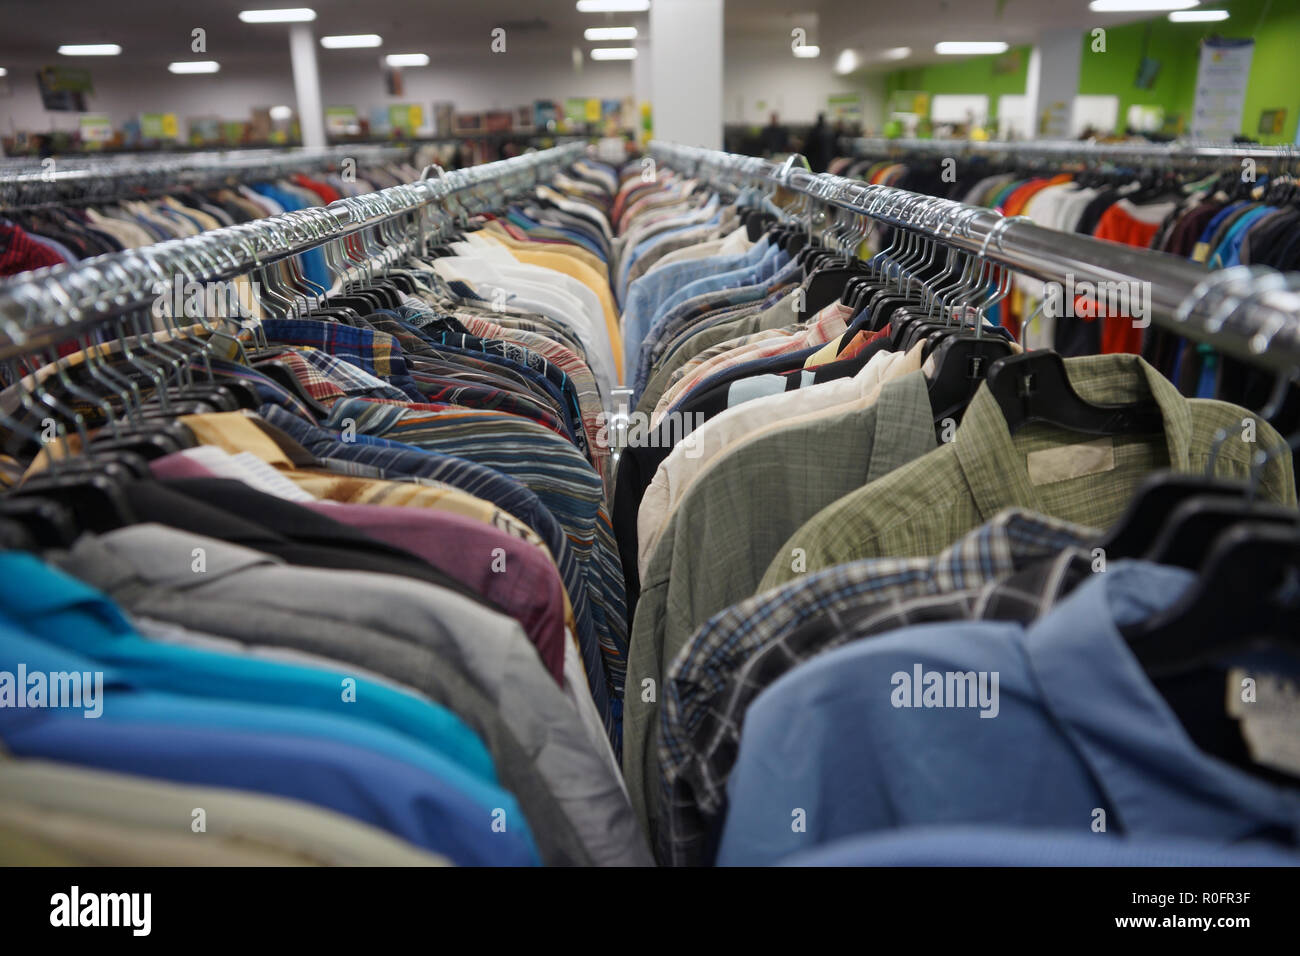 6e52754d911 Used Clothing Store Stock Photos   Used Clothing Store Stock Images ...